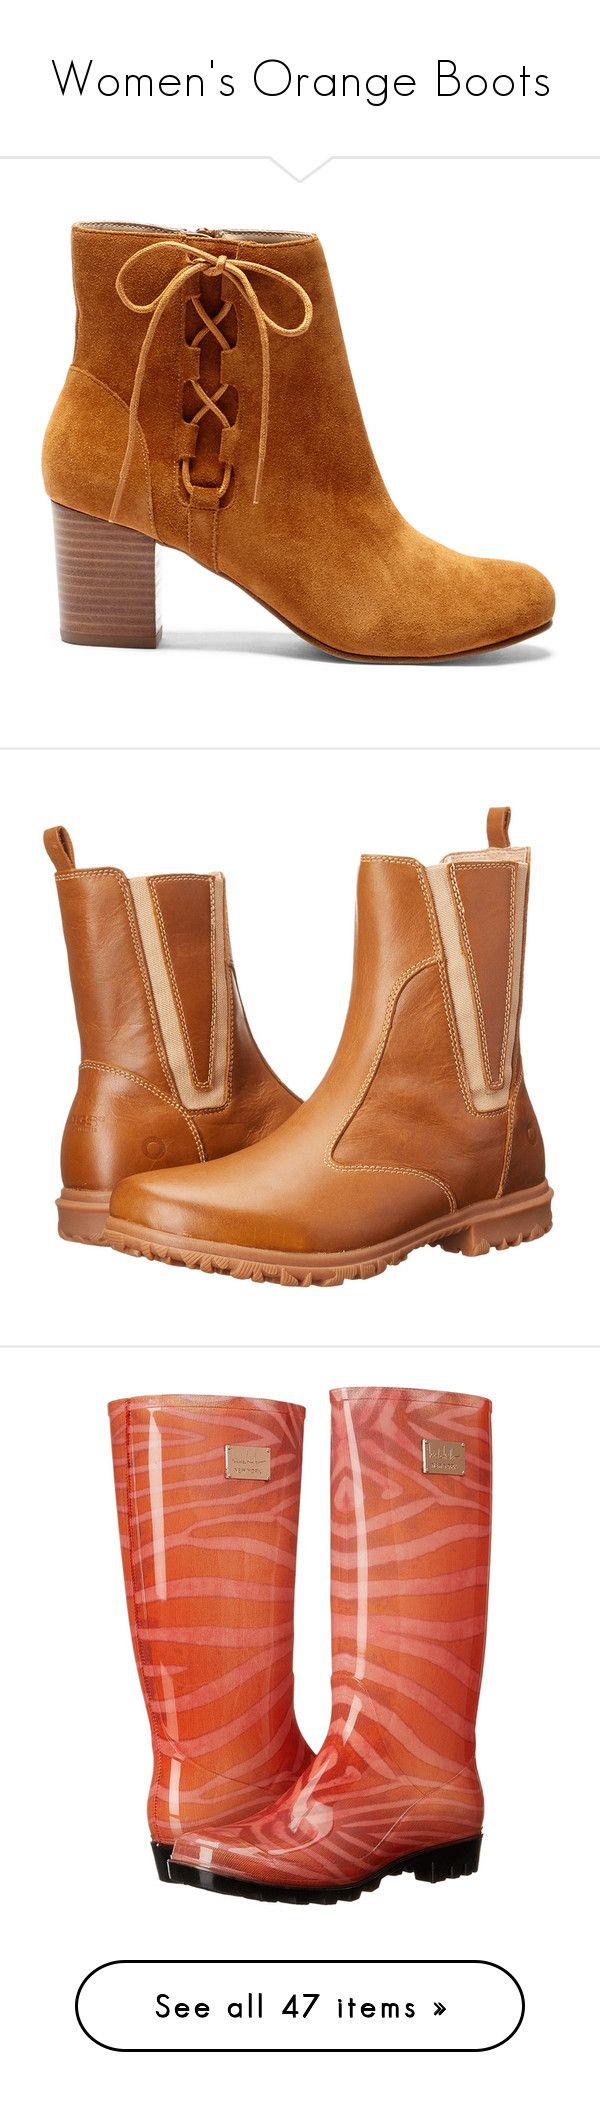 """""""Women's Orange Boots"""" by eternalfeatherfilm on Polyvore featuring shoes, boots, orange, wellies boots, wellies rubber boots, knee high rubber boots, orange boots, rubber rain boots, ankle booties and chestnut"""